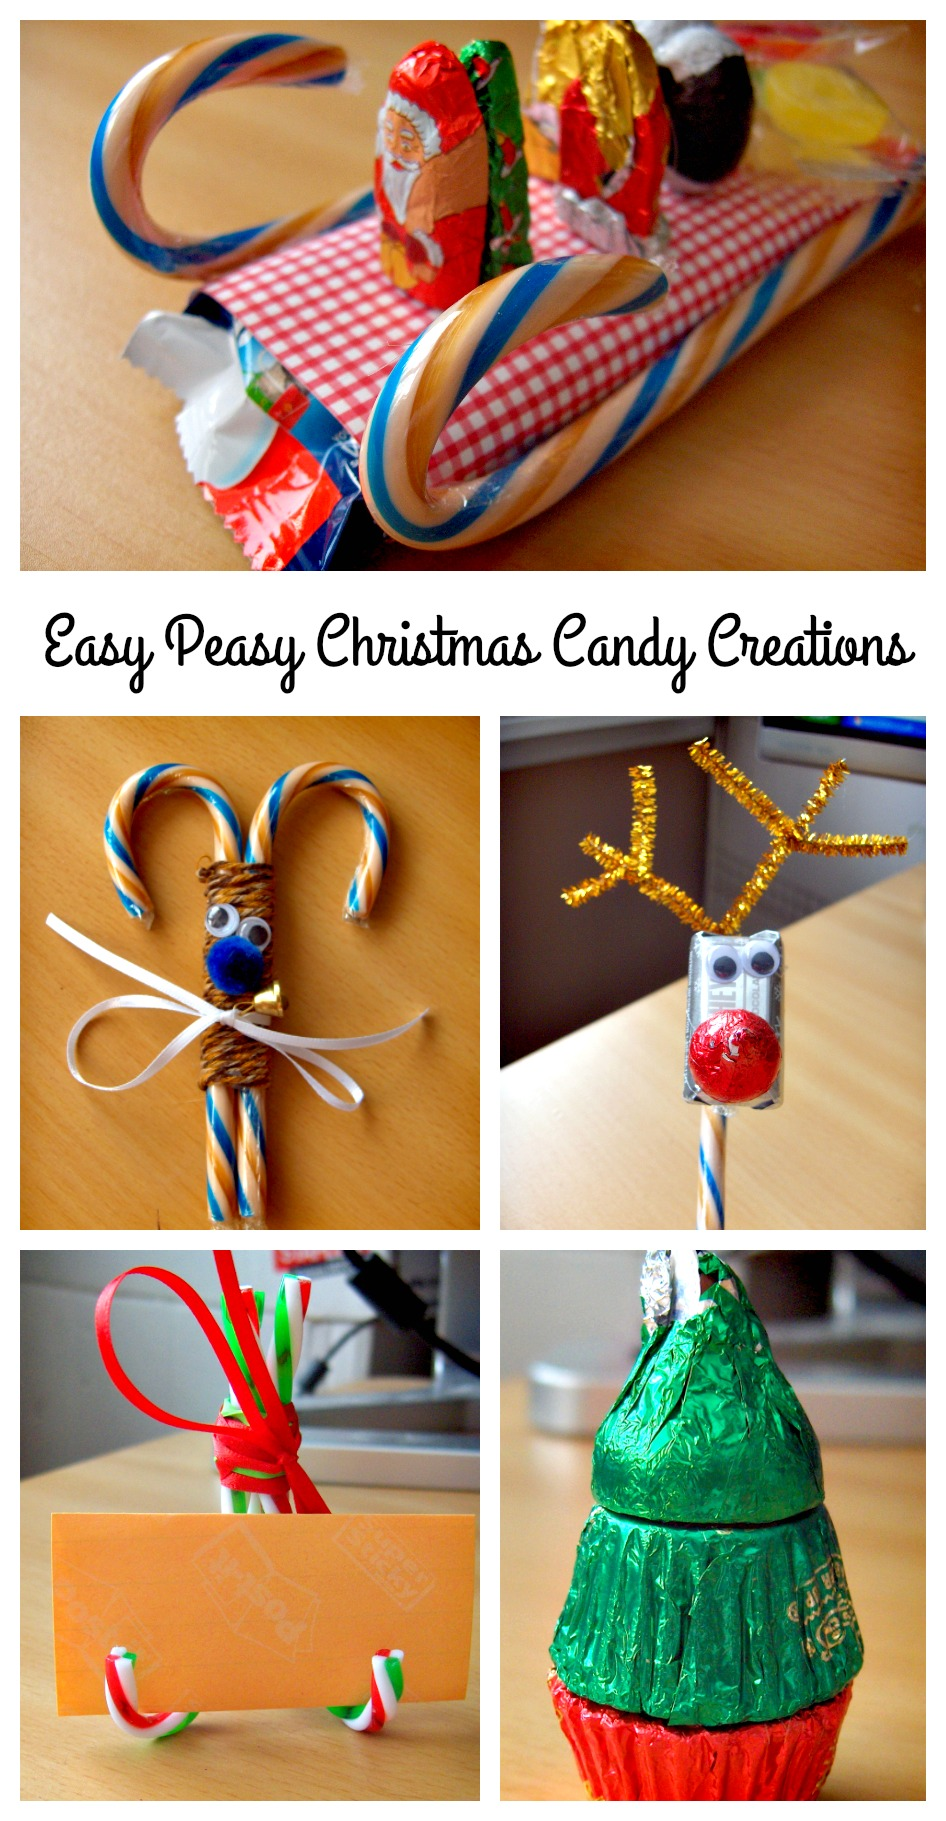 Easy Peasy And Fun: Easy Peasy Christmas Candy Creations You Can Make For The